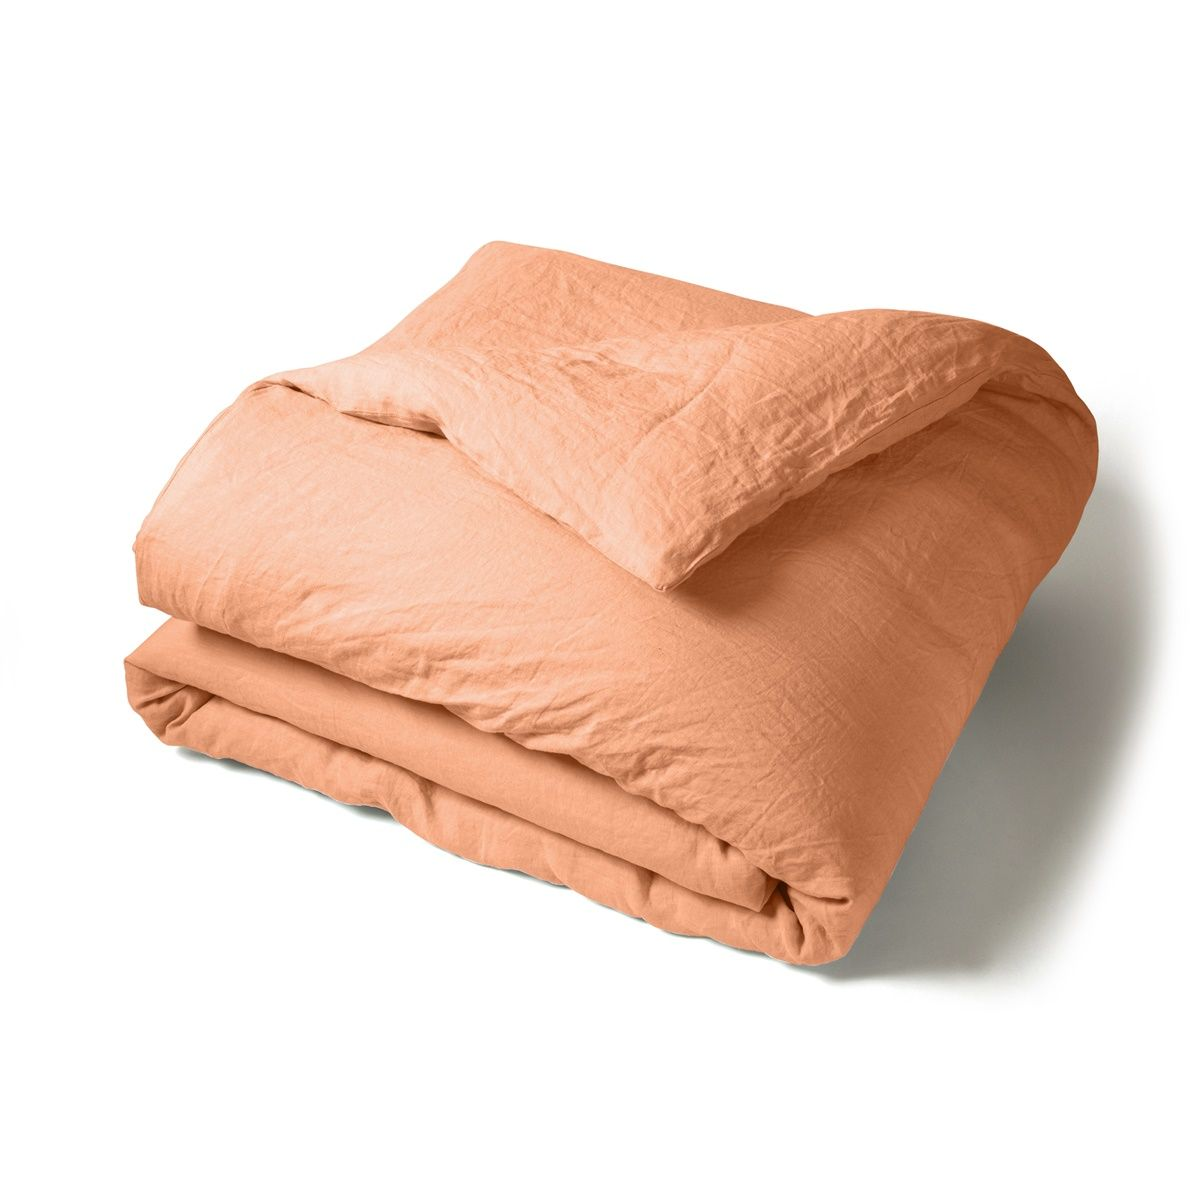 Duvet Cover Washed Linen orange | Linge de lit | Tradition des Vosges